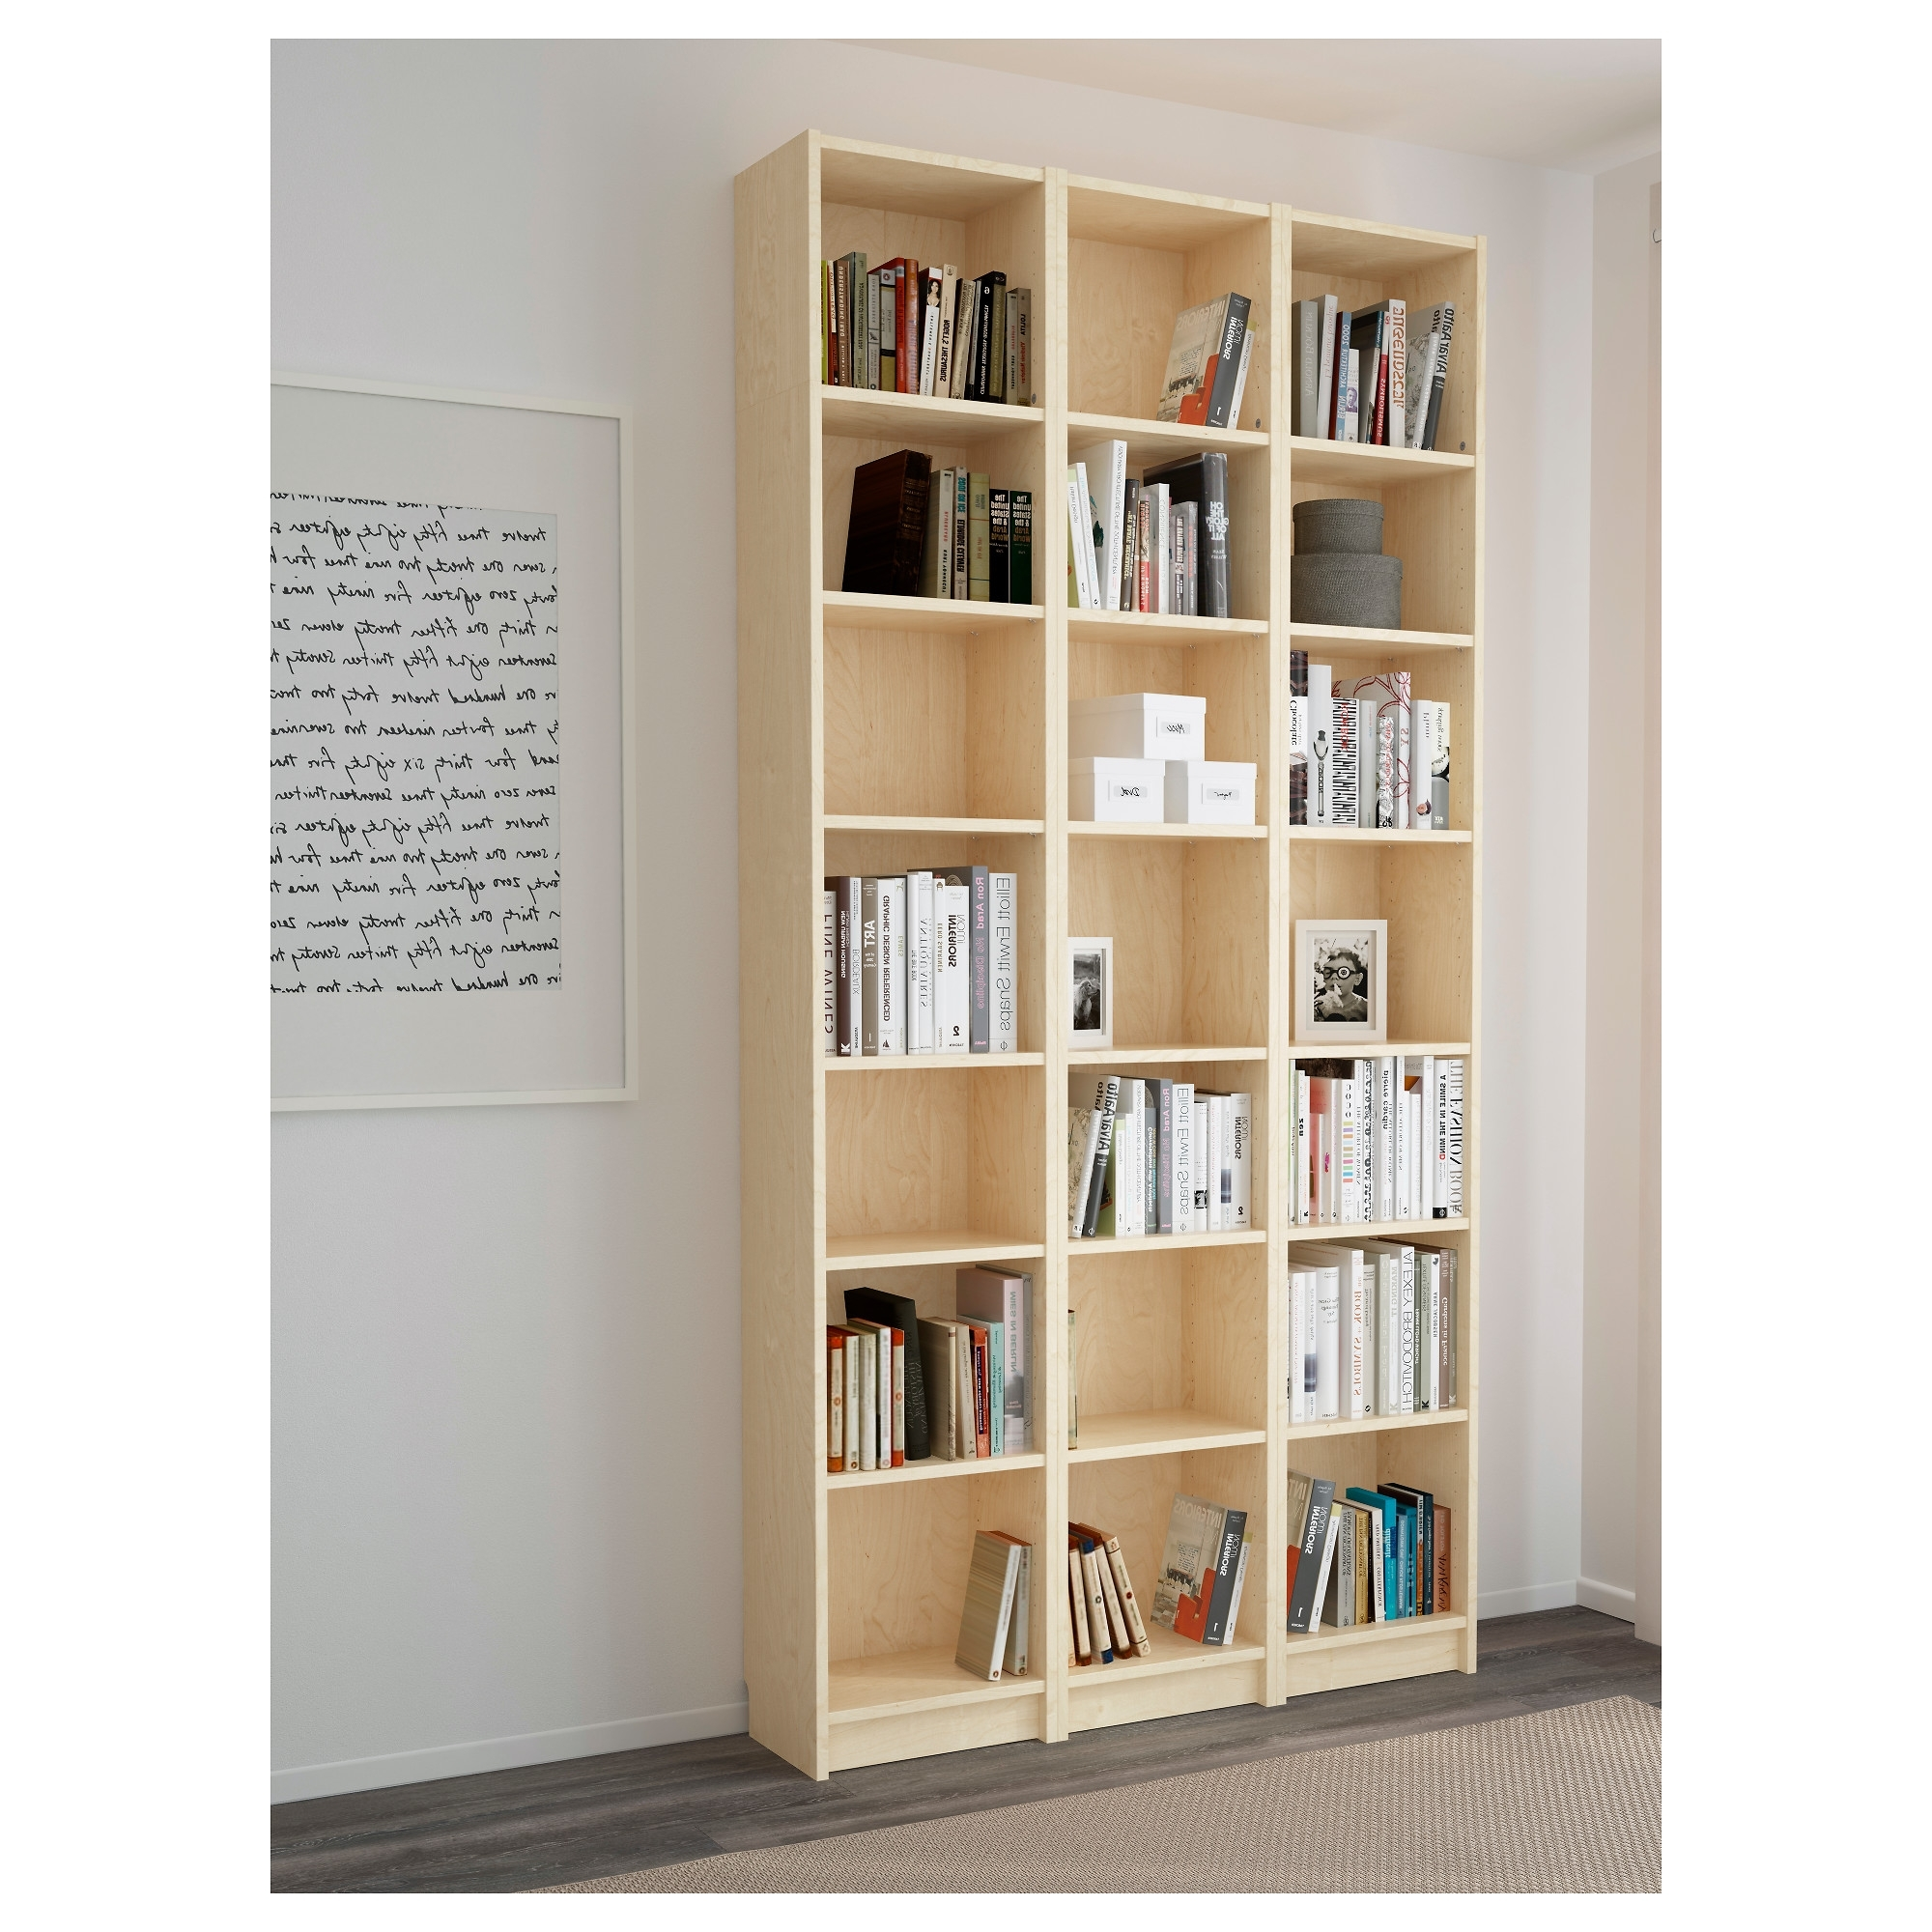 Wooden Bookcases With Regard To Most Popular Wooden Bookcases (View 6 of 15)